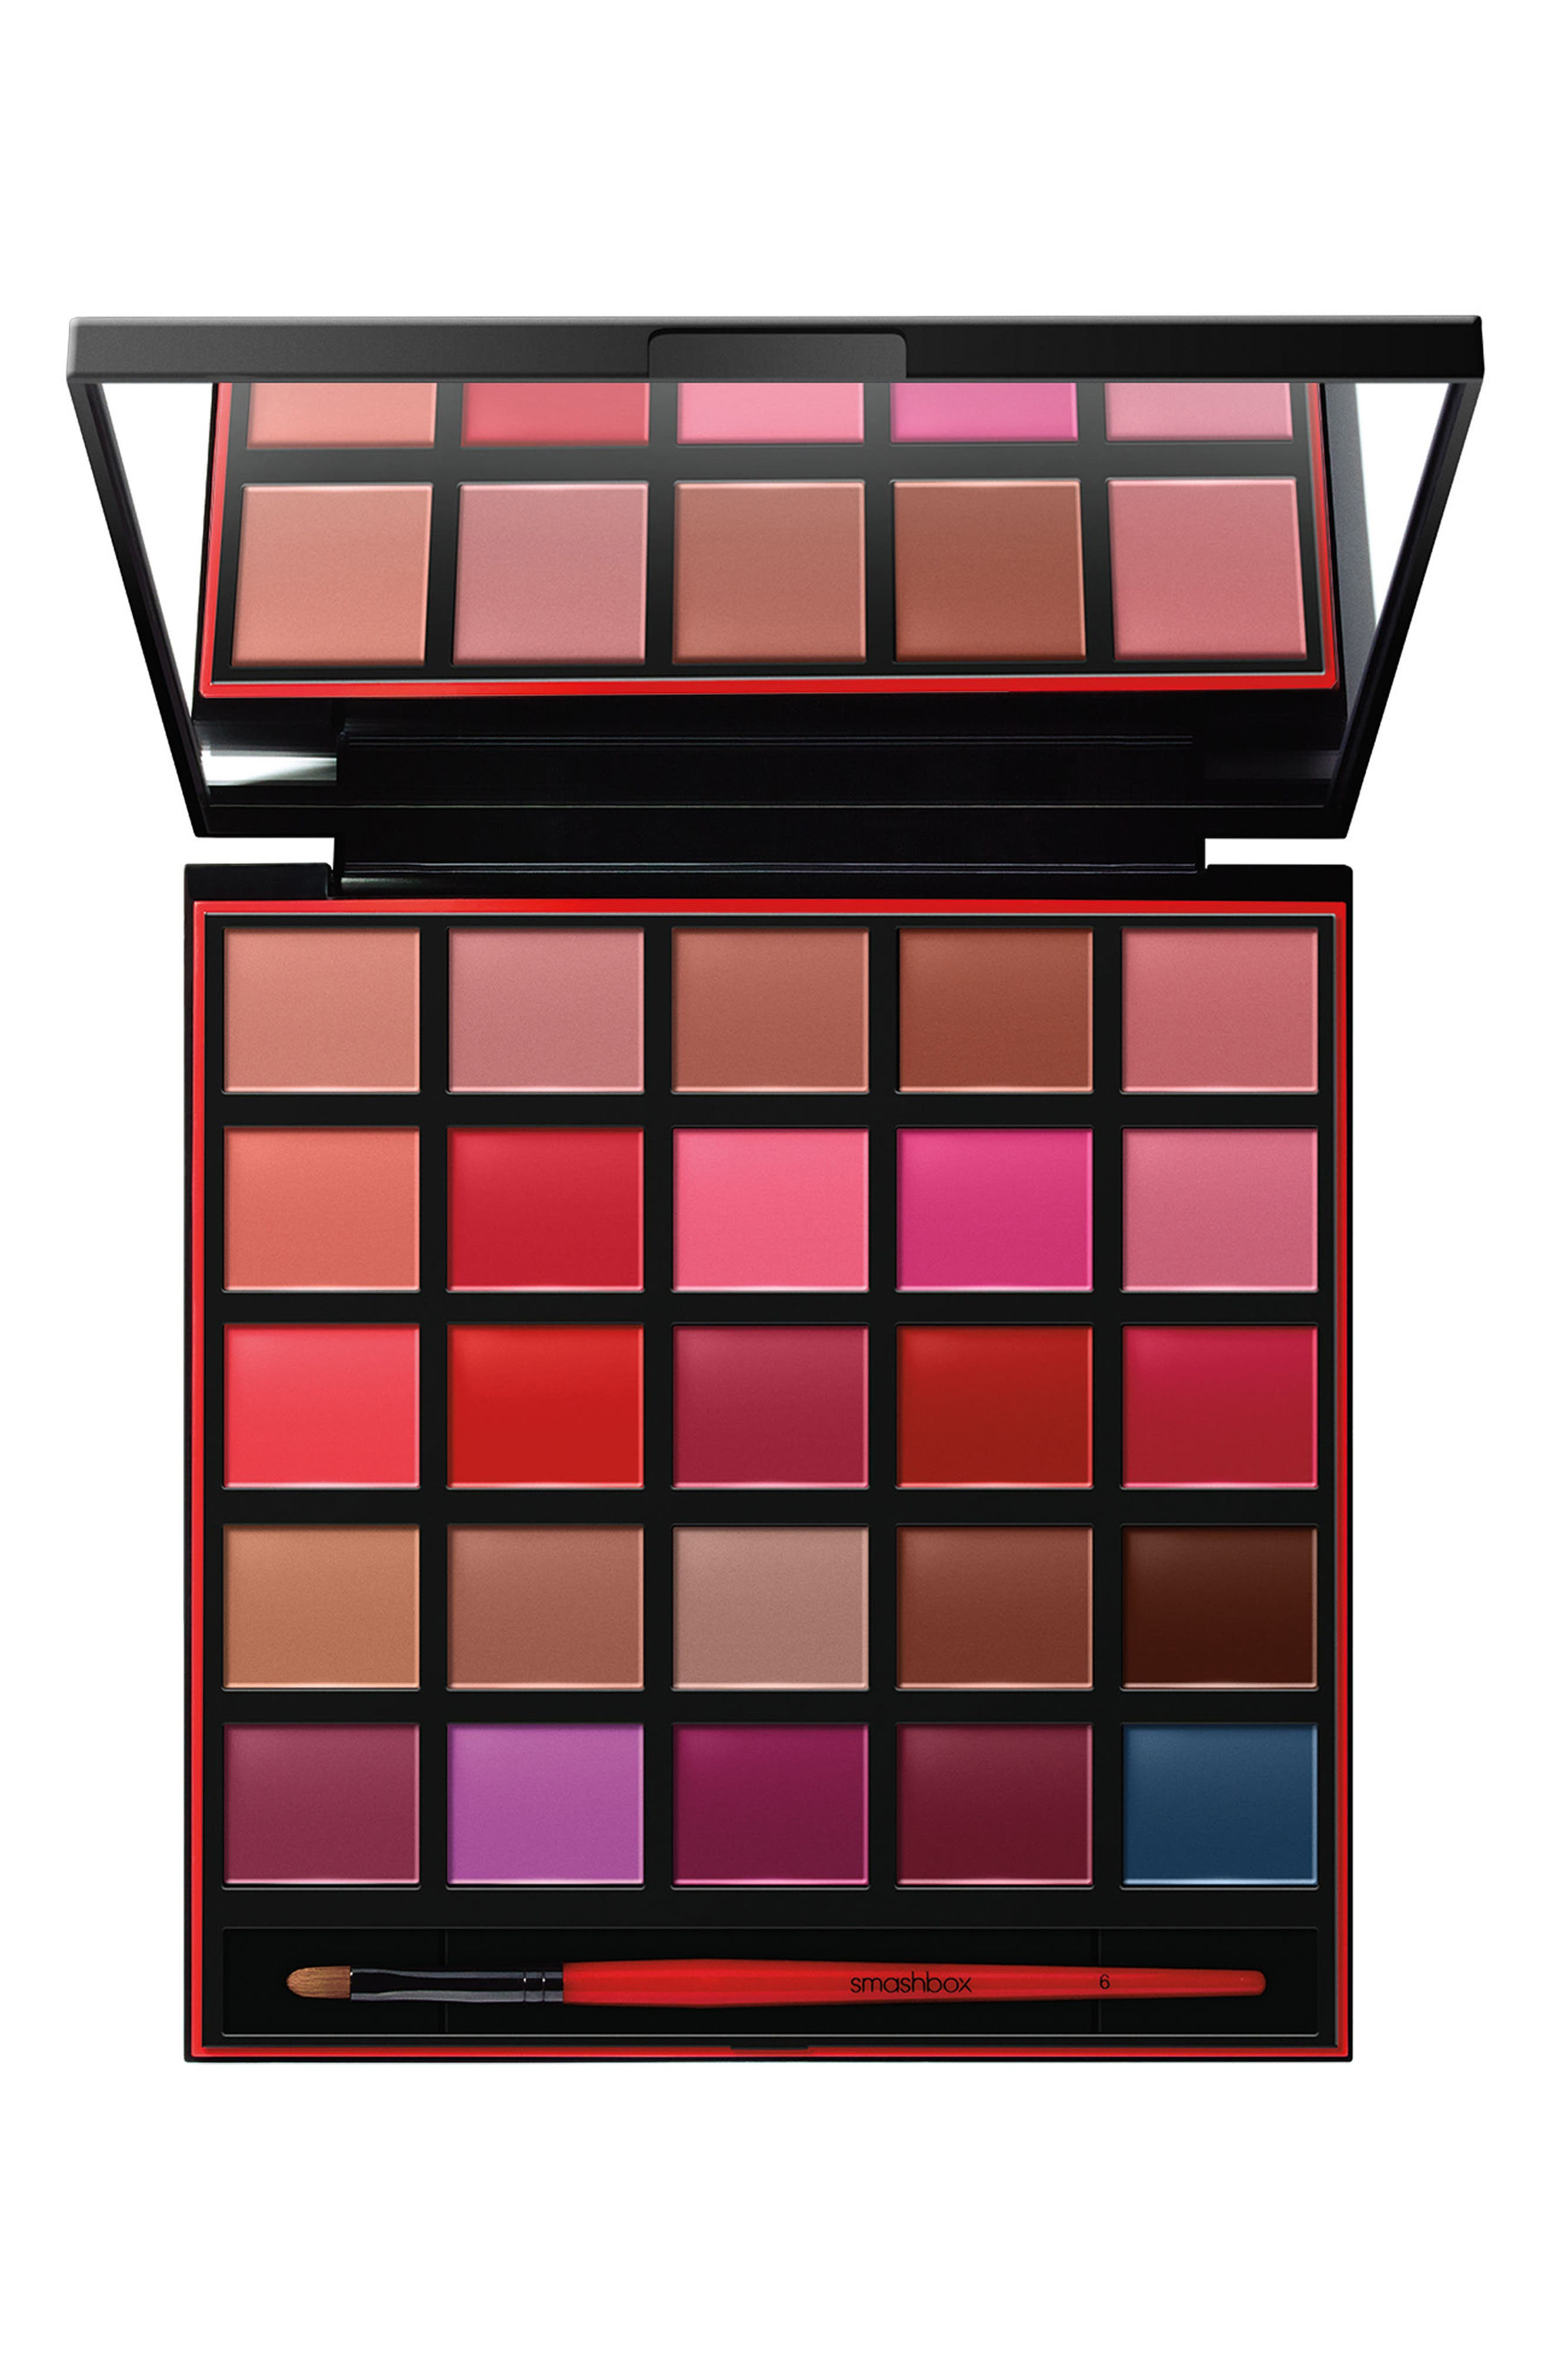 Smashbox Be Legendary Lipstick Palette ($184 Value)